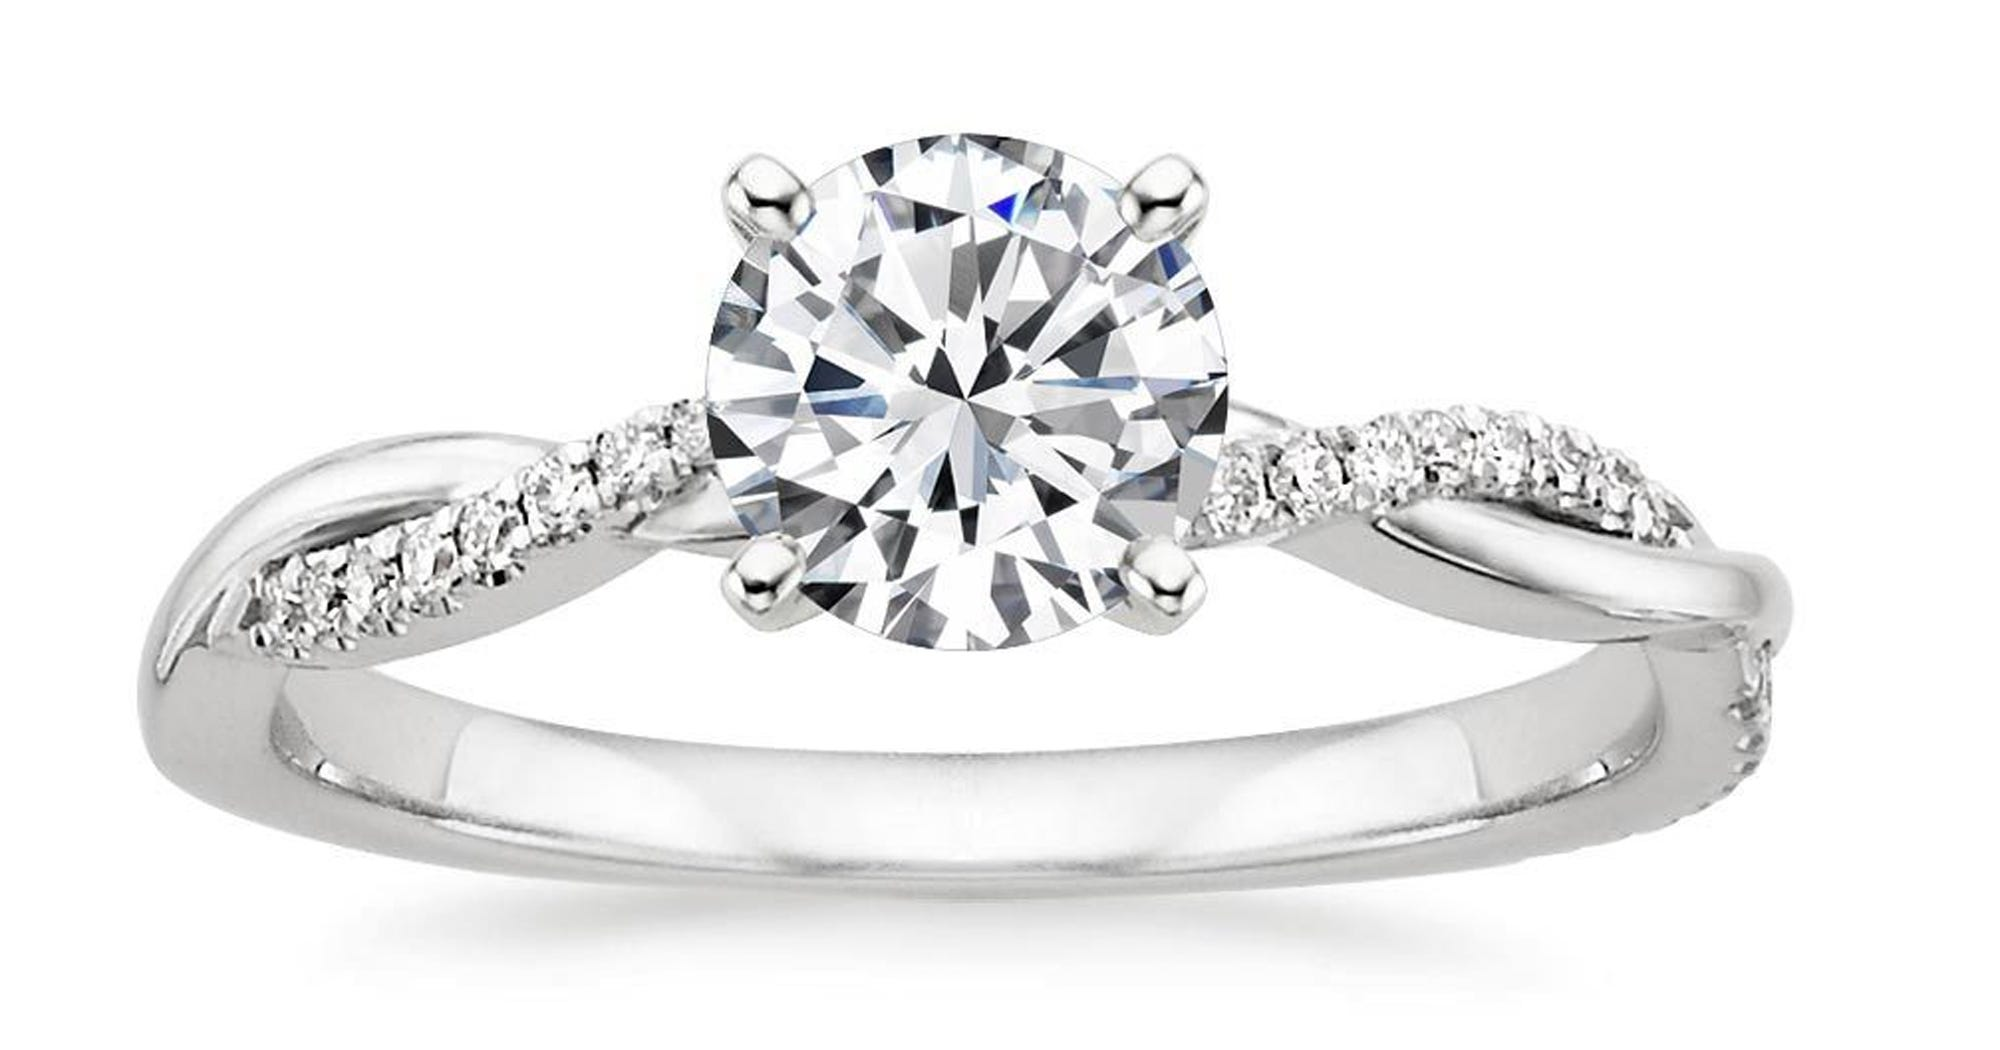 b designers michael platinum rings detailed wedding engagement lace ring design collection